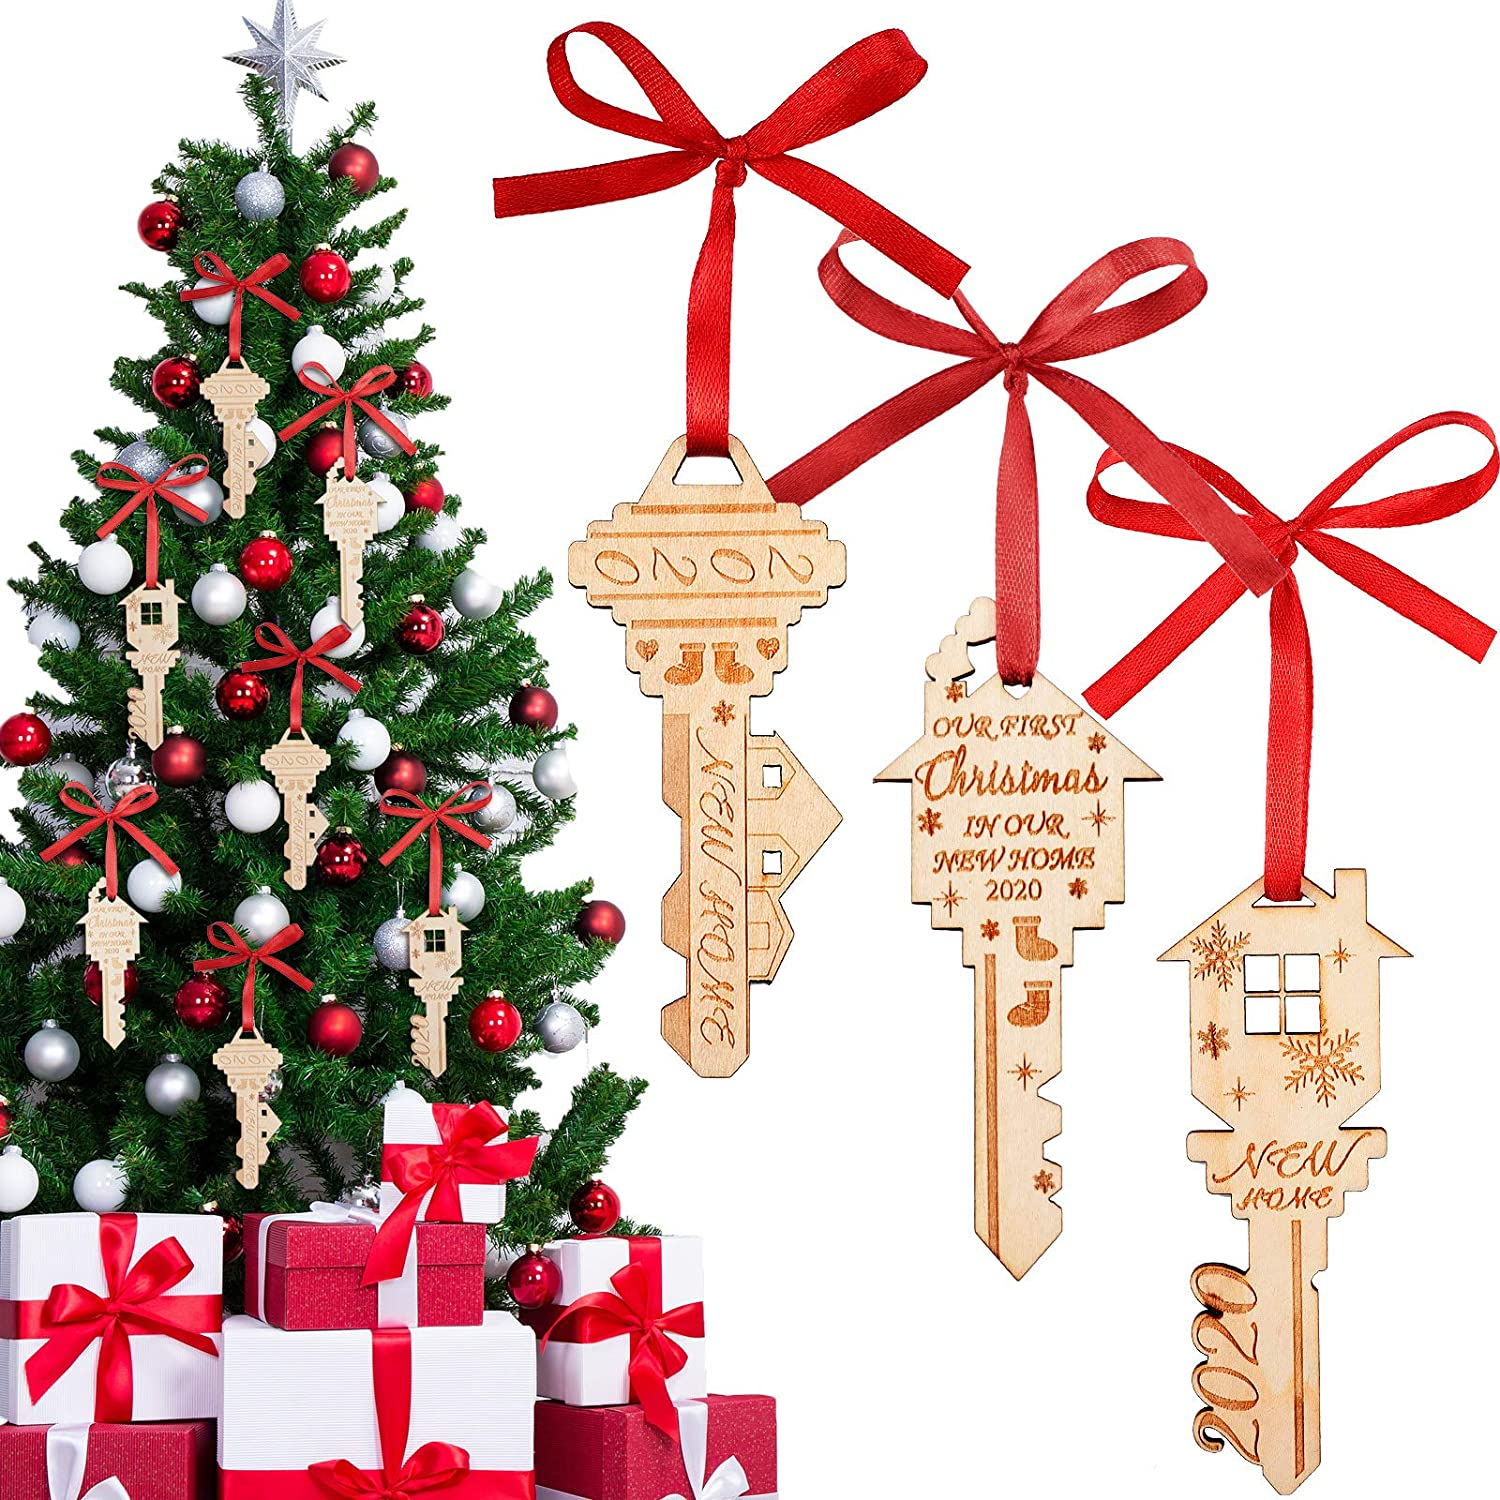 WILLBOND First Christmas Wooden Ornaments Our First Christmas in Our New Home 2020 Double Layer Christmas Wood Ornaments with Ribbon for Xmas Tree Hanging Decoration (3)